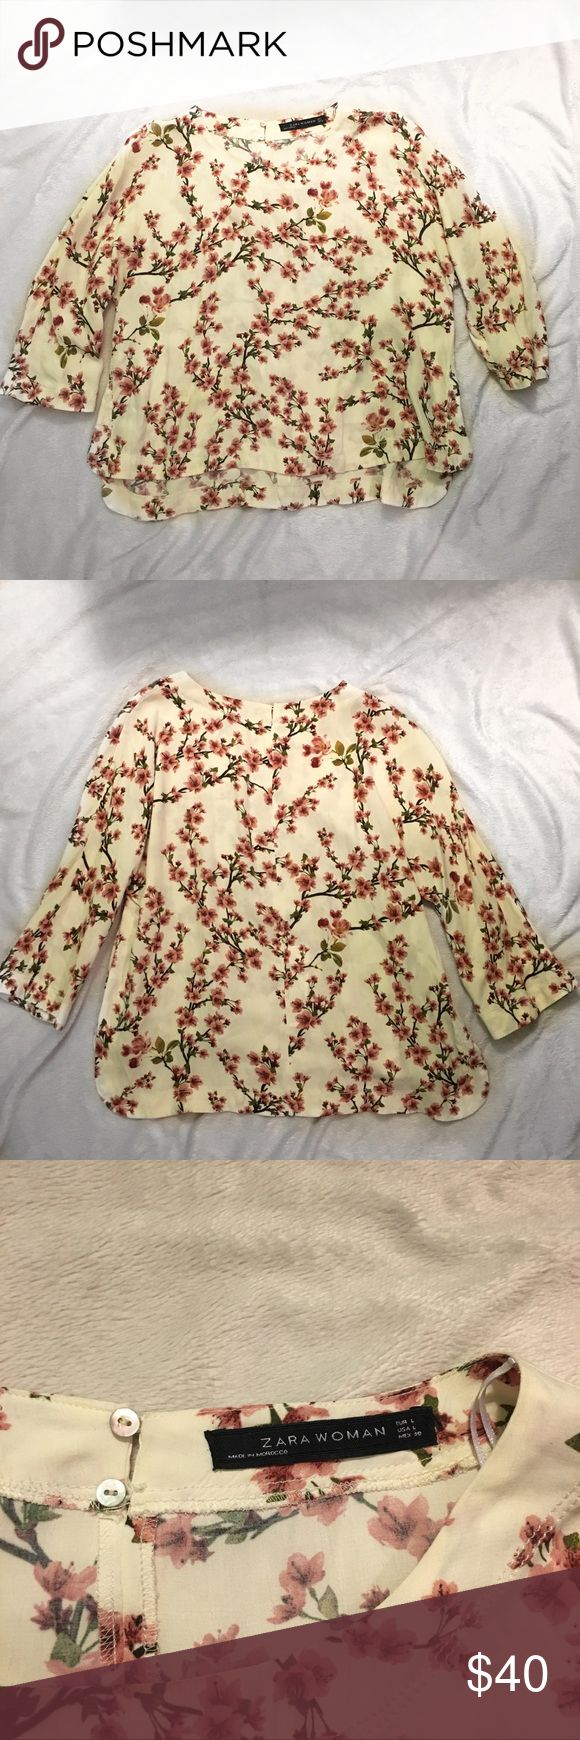 Floral Zara blouse Floral Zara blouse!! Cream top with pink flowers. In excellent condition. Has cute slits down the side. Material: 100% viscose Zara Tops Blouses